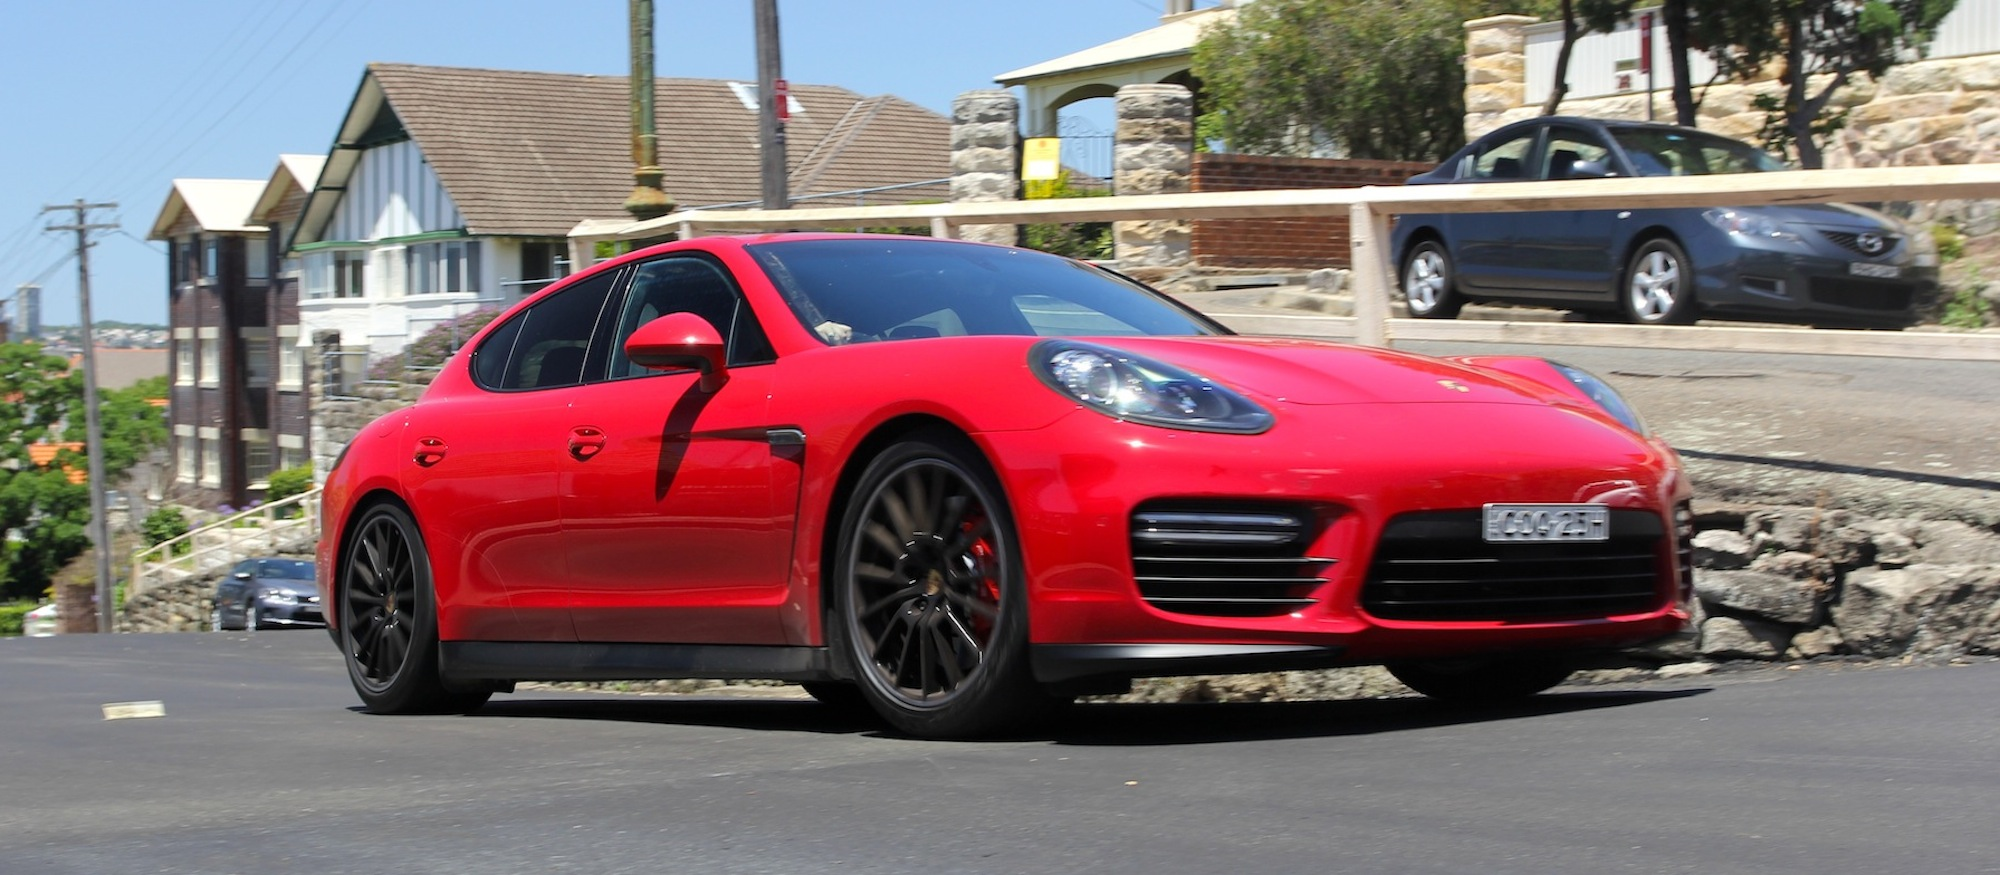 Porsche Panamera Review Gts Photos Caradvice